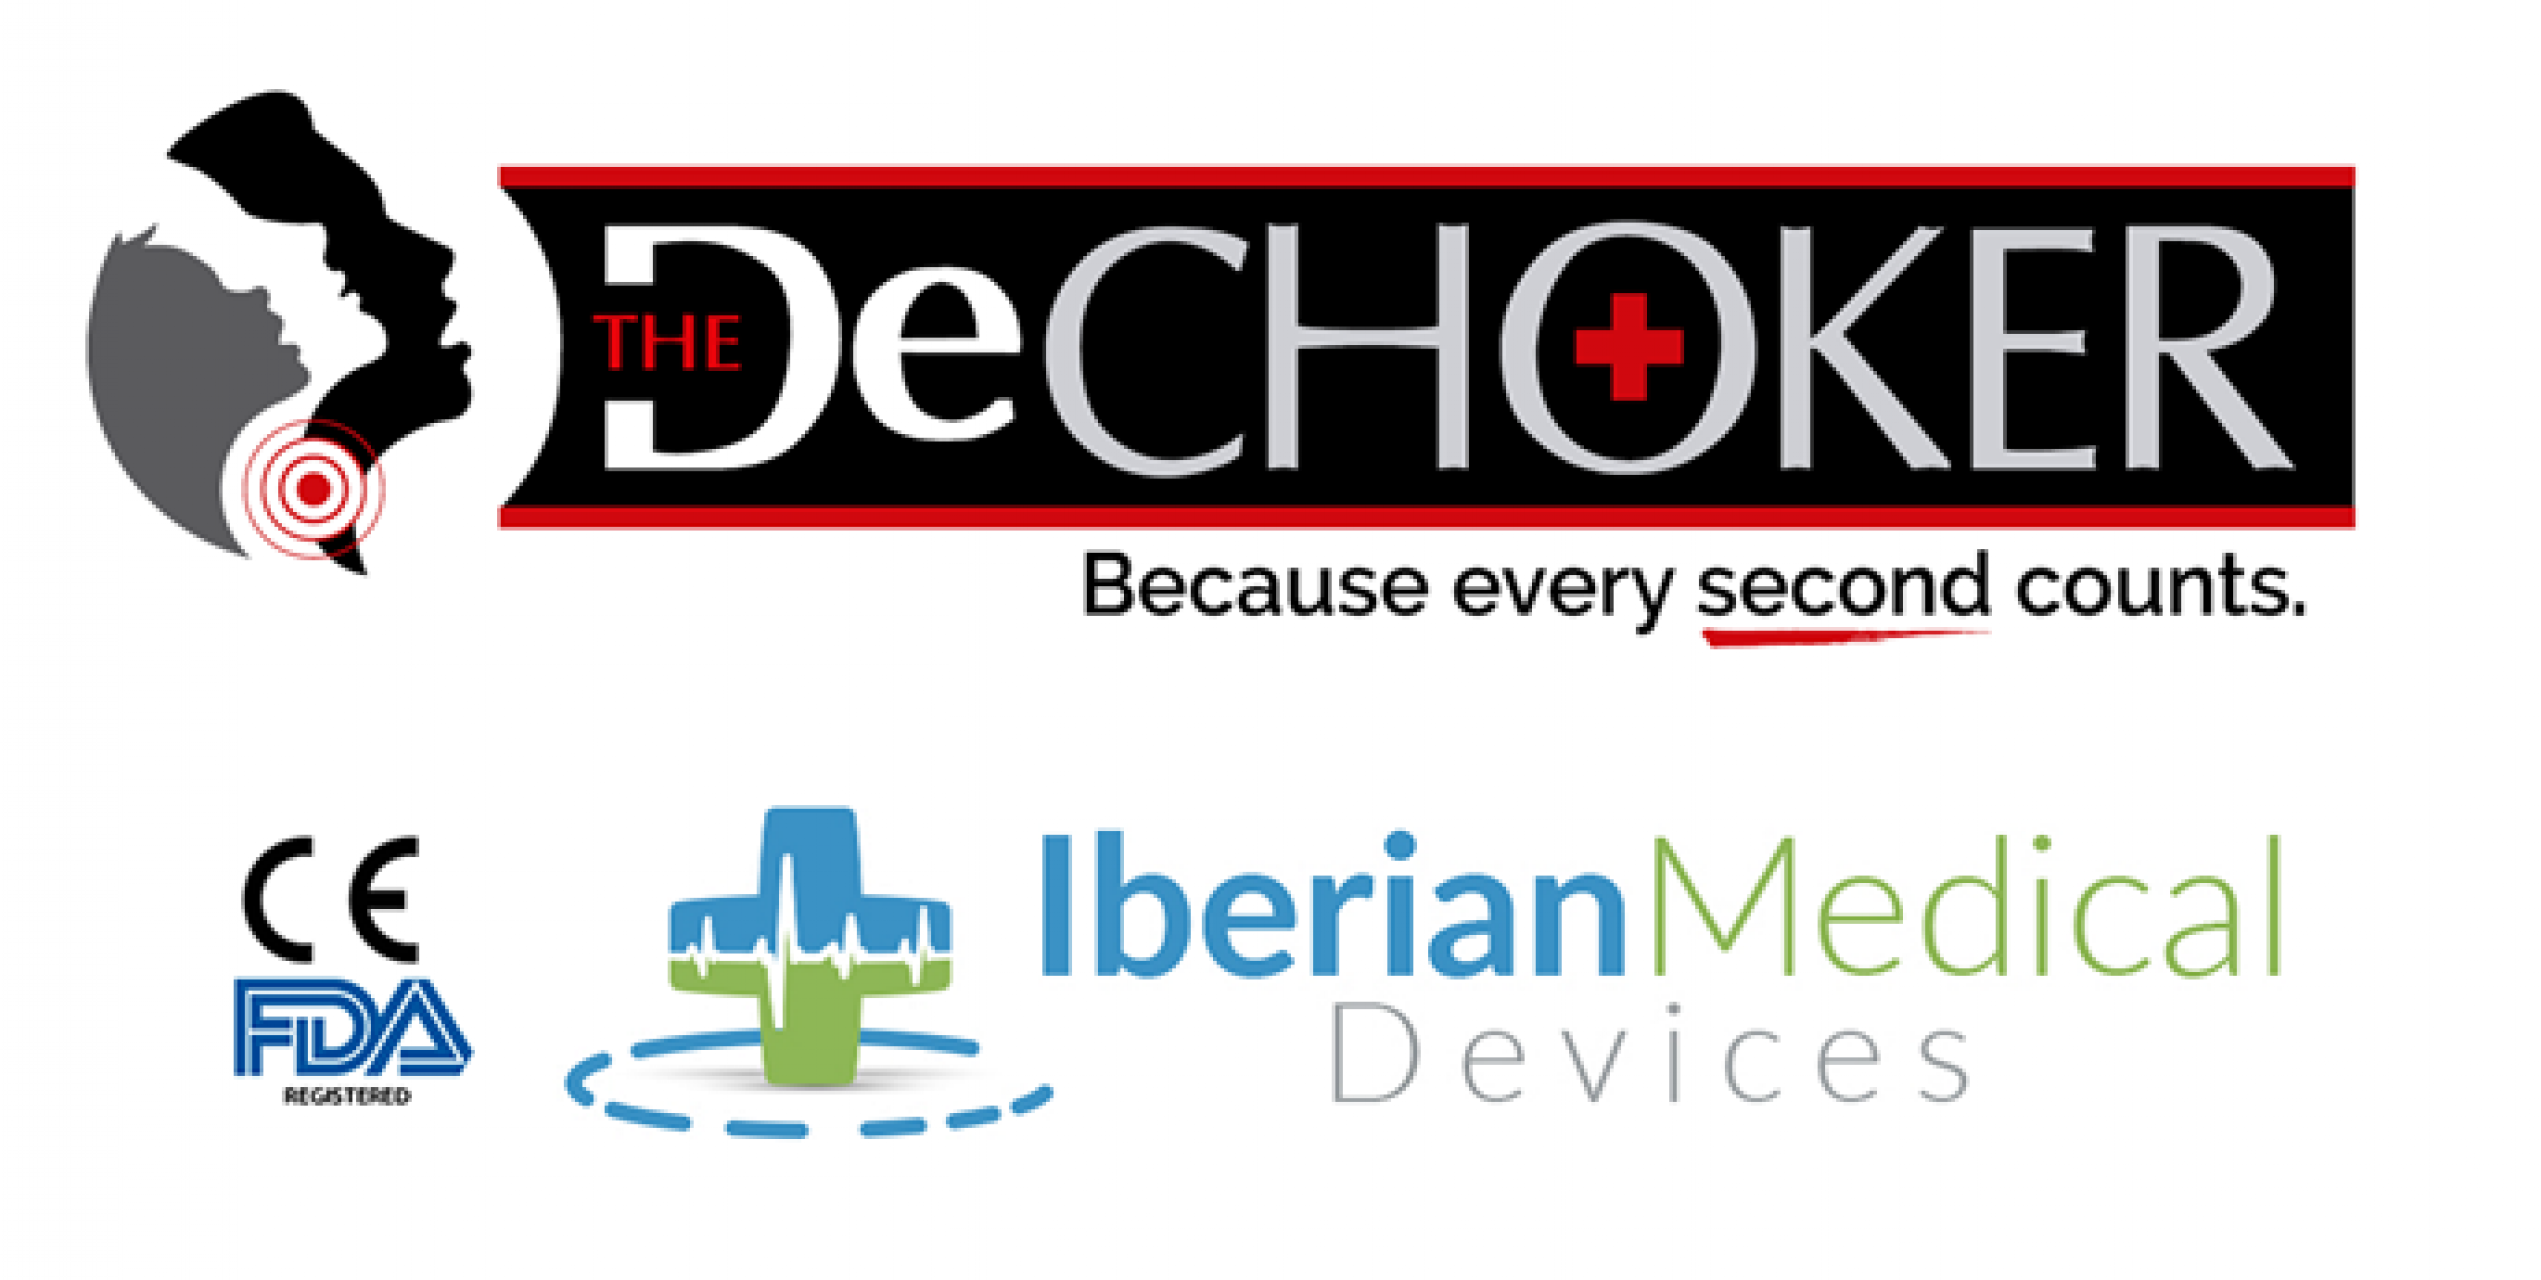 IBERIAN MEDICAL DEVICES - DECHOKER SPAIN